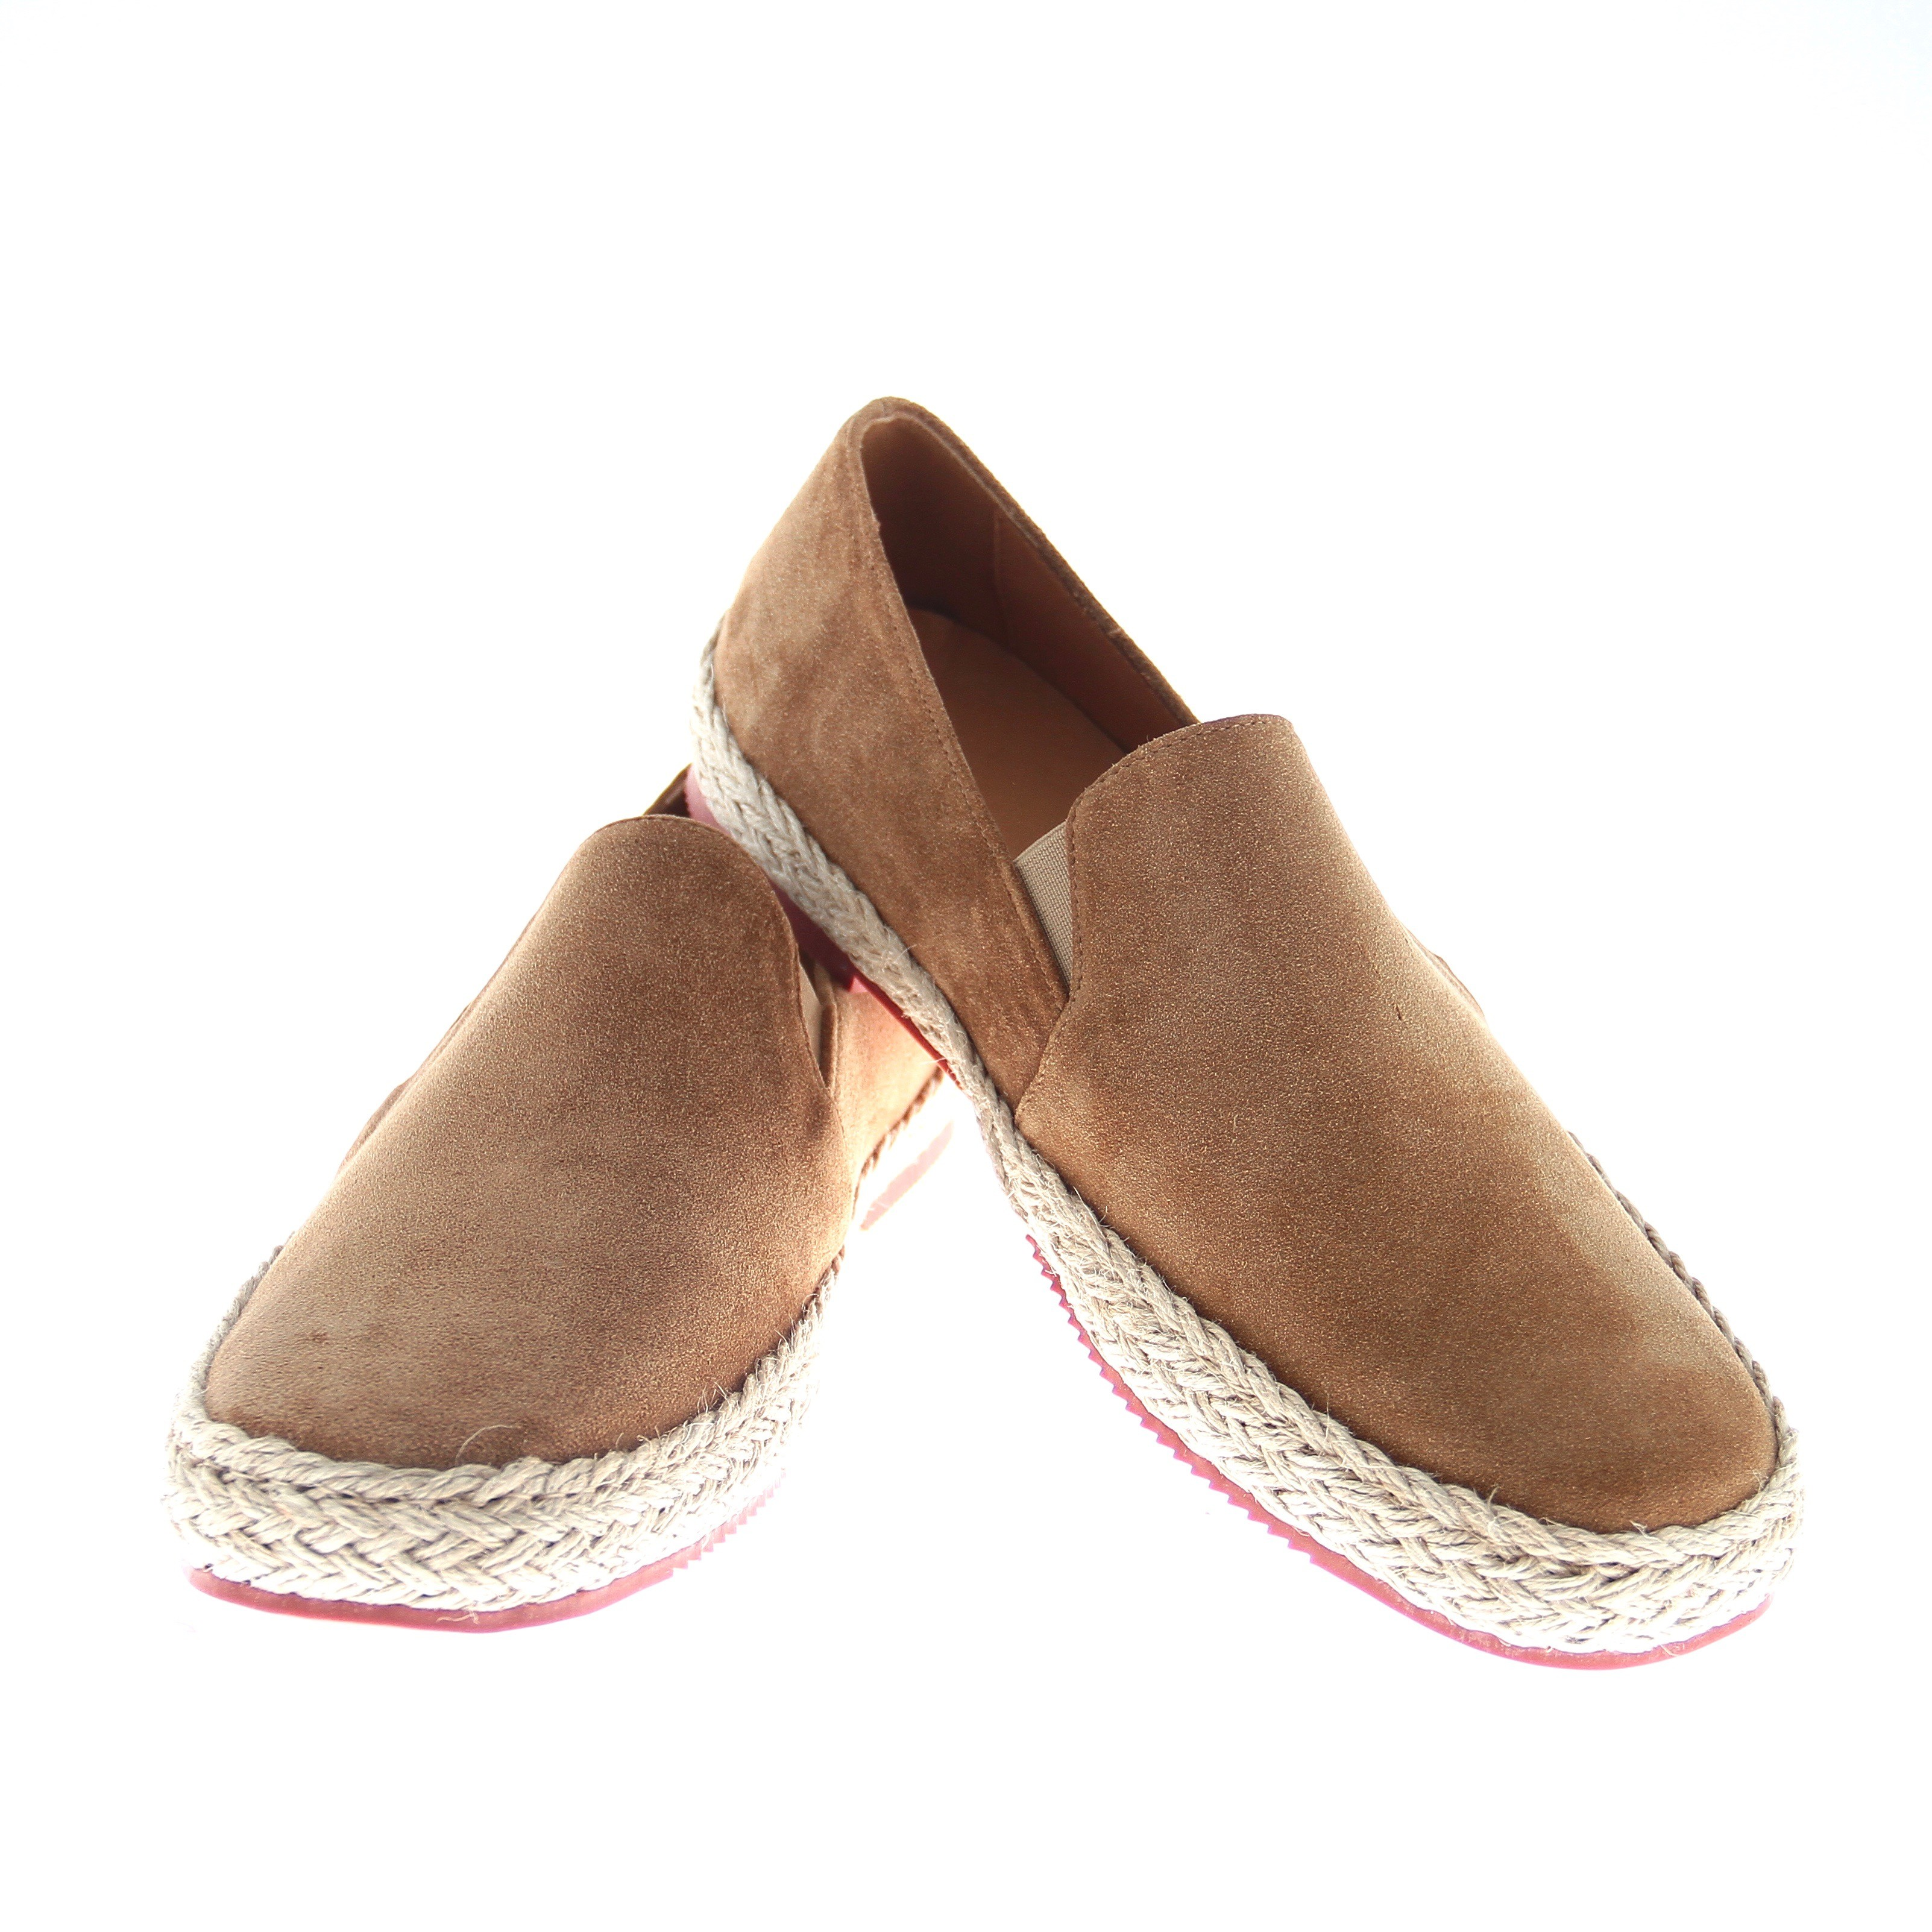 Espadrilles : camel - veau velours - made in italy (Shoes)